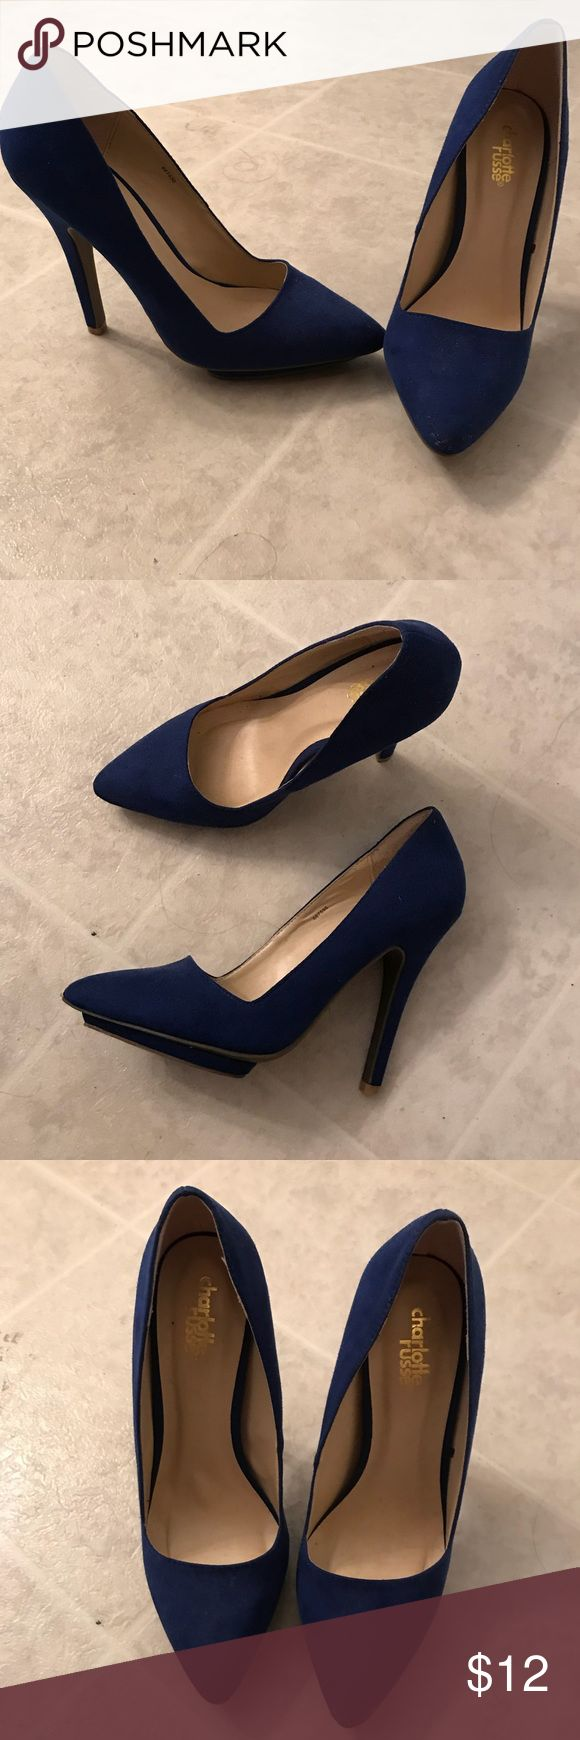 🦄ROYAL BLUE PUMPS!!! Royal blue pumps from Charlotte rouse.only worn a couple of times . Charlotte Russe Shoes Heels